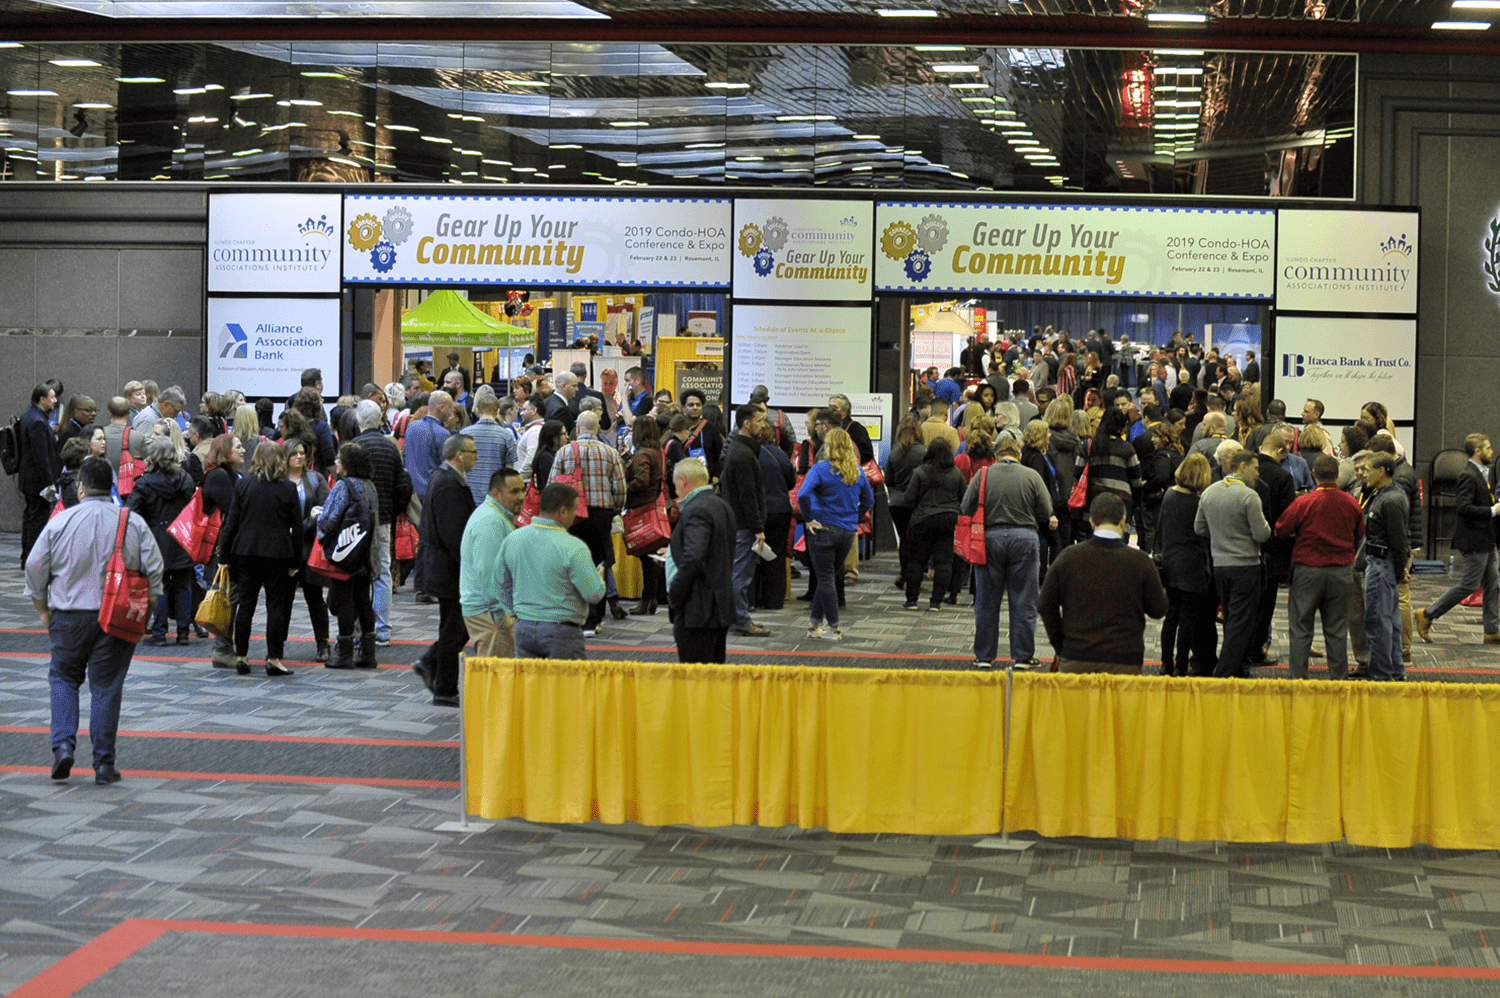 people entering cai illinois 2019 conference and expo